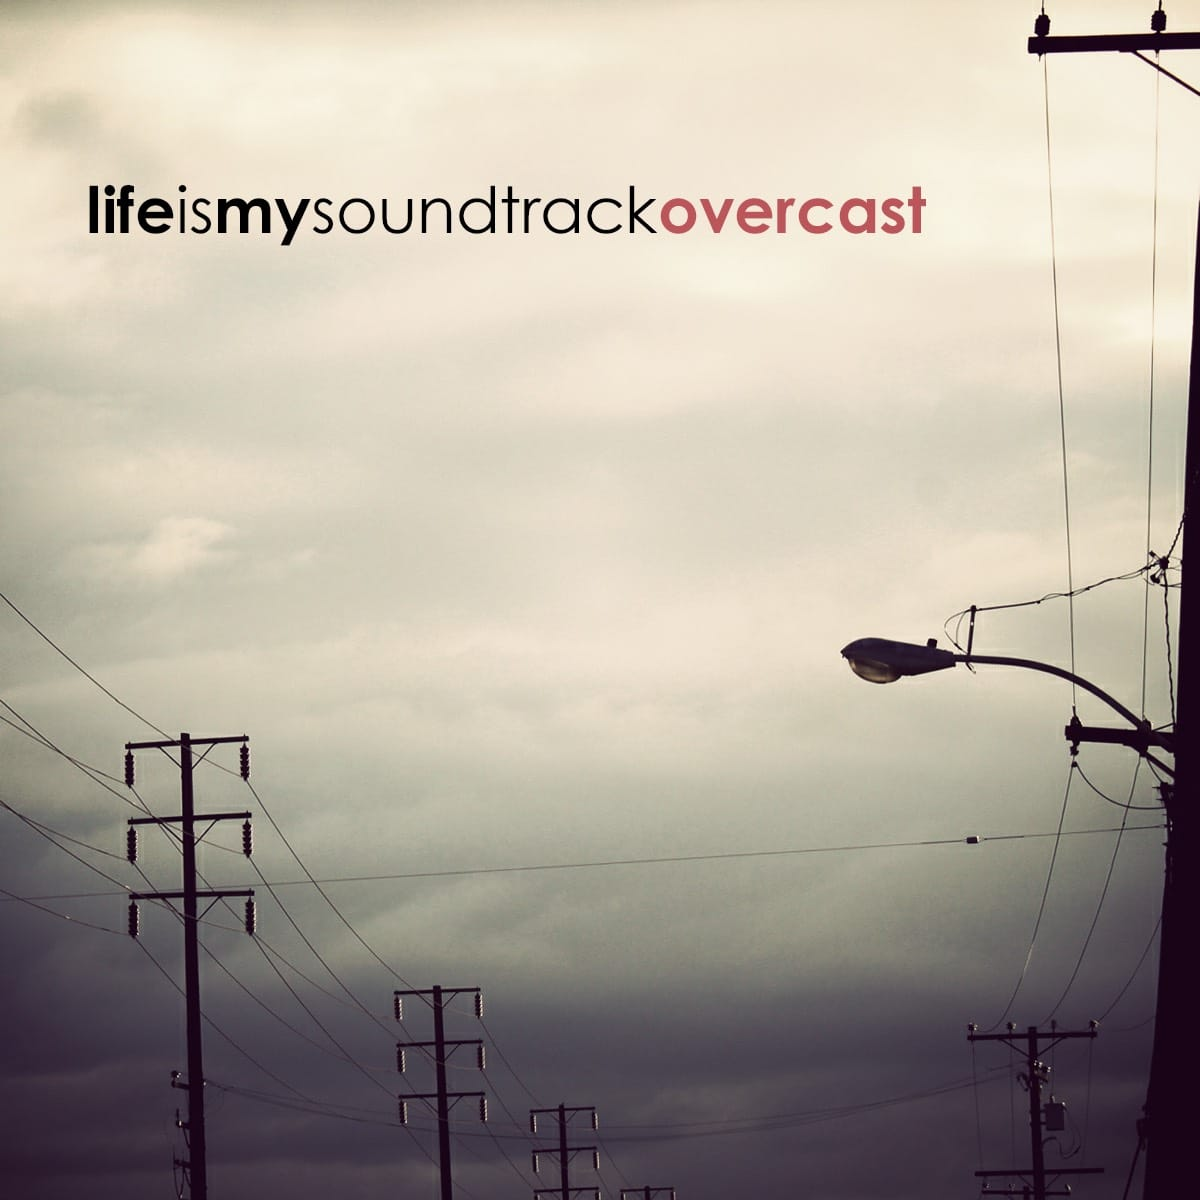 The album Overcast by Life Is My Soundtrack - Electronic music inspired by an overcast sky as the early evening slowly closes in